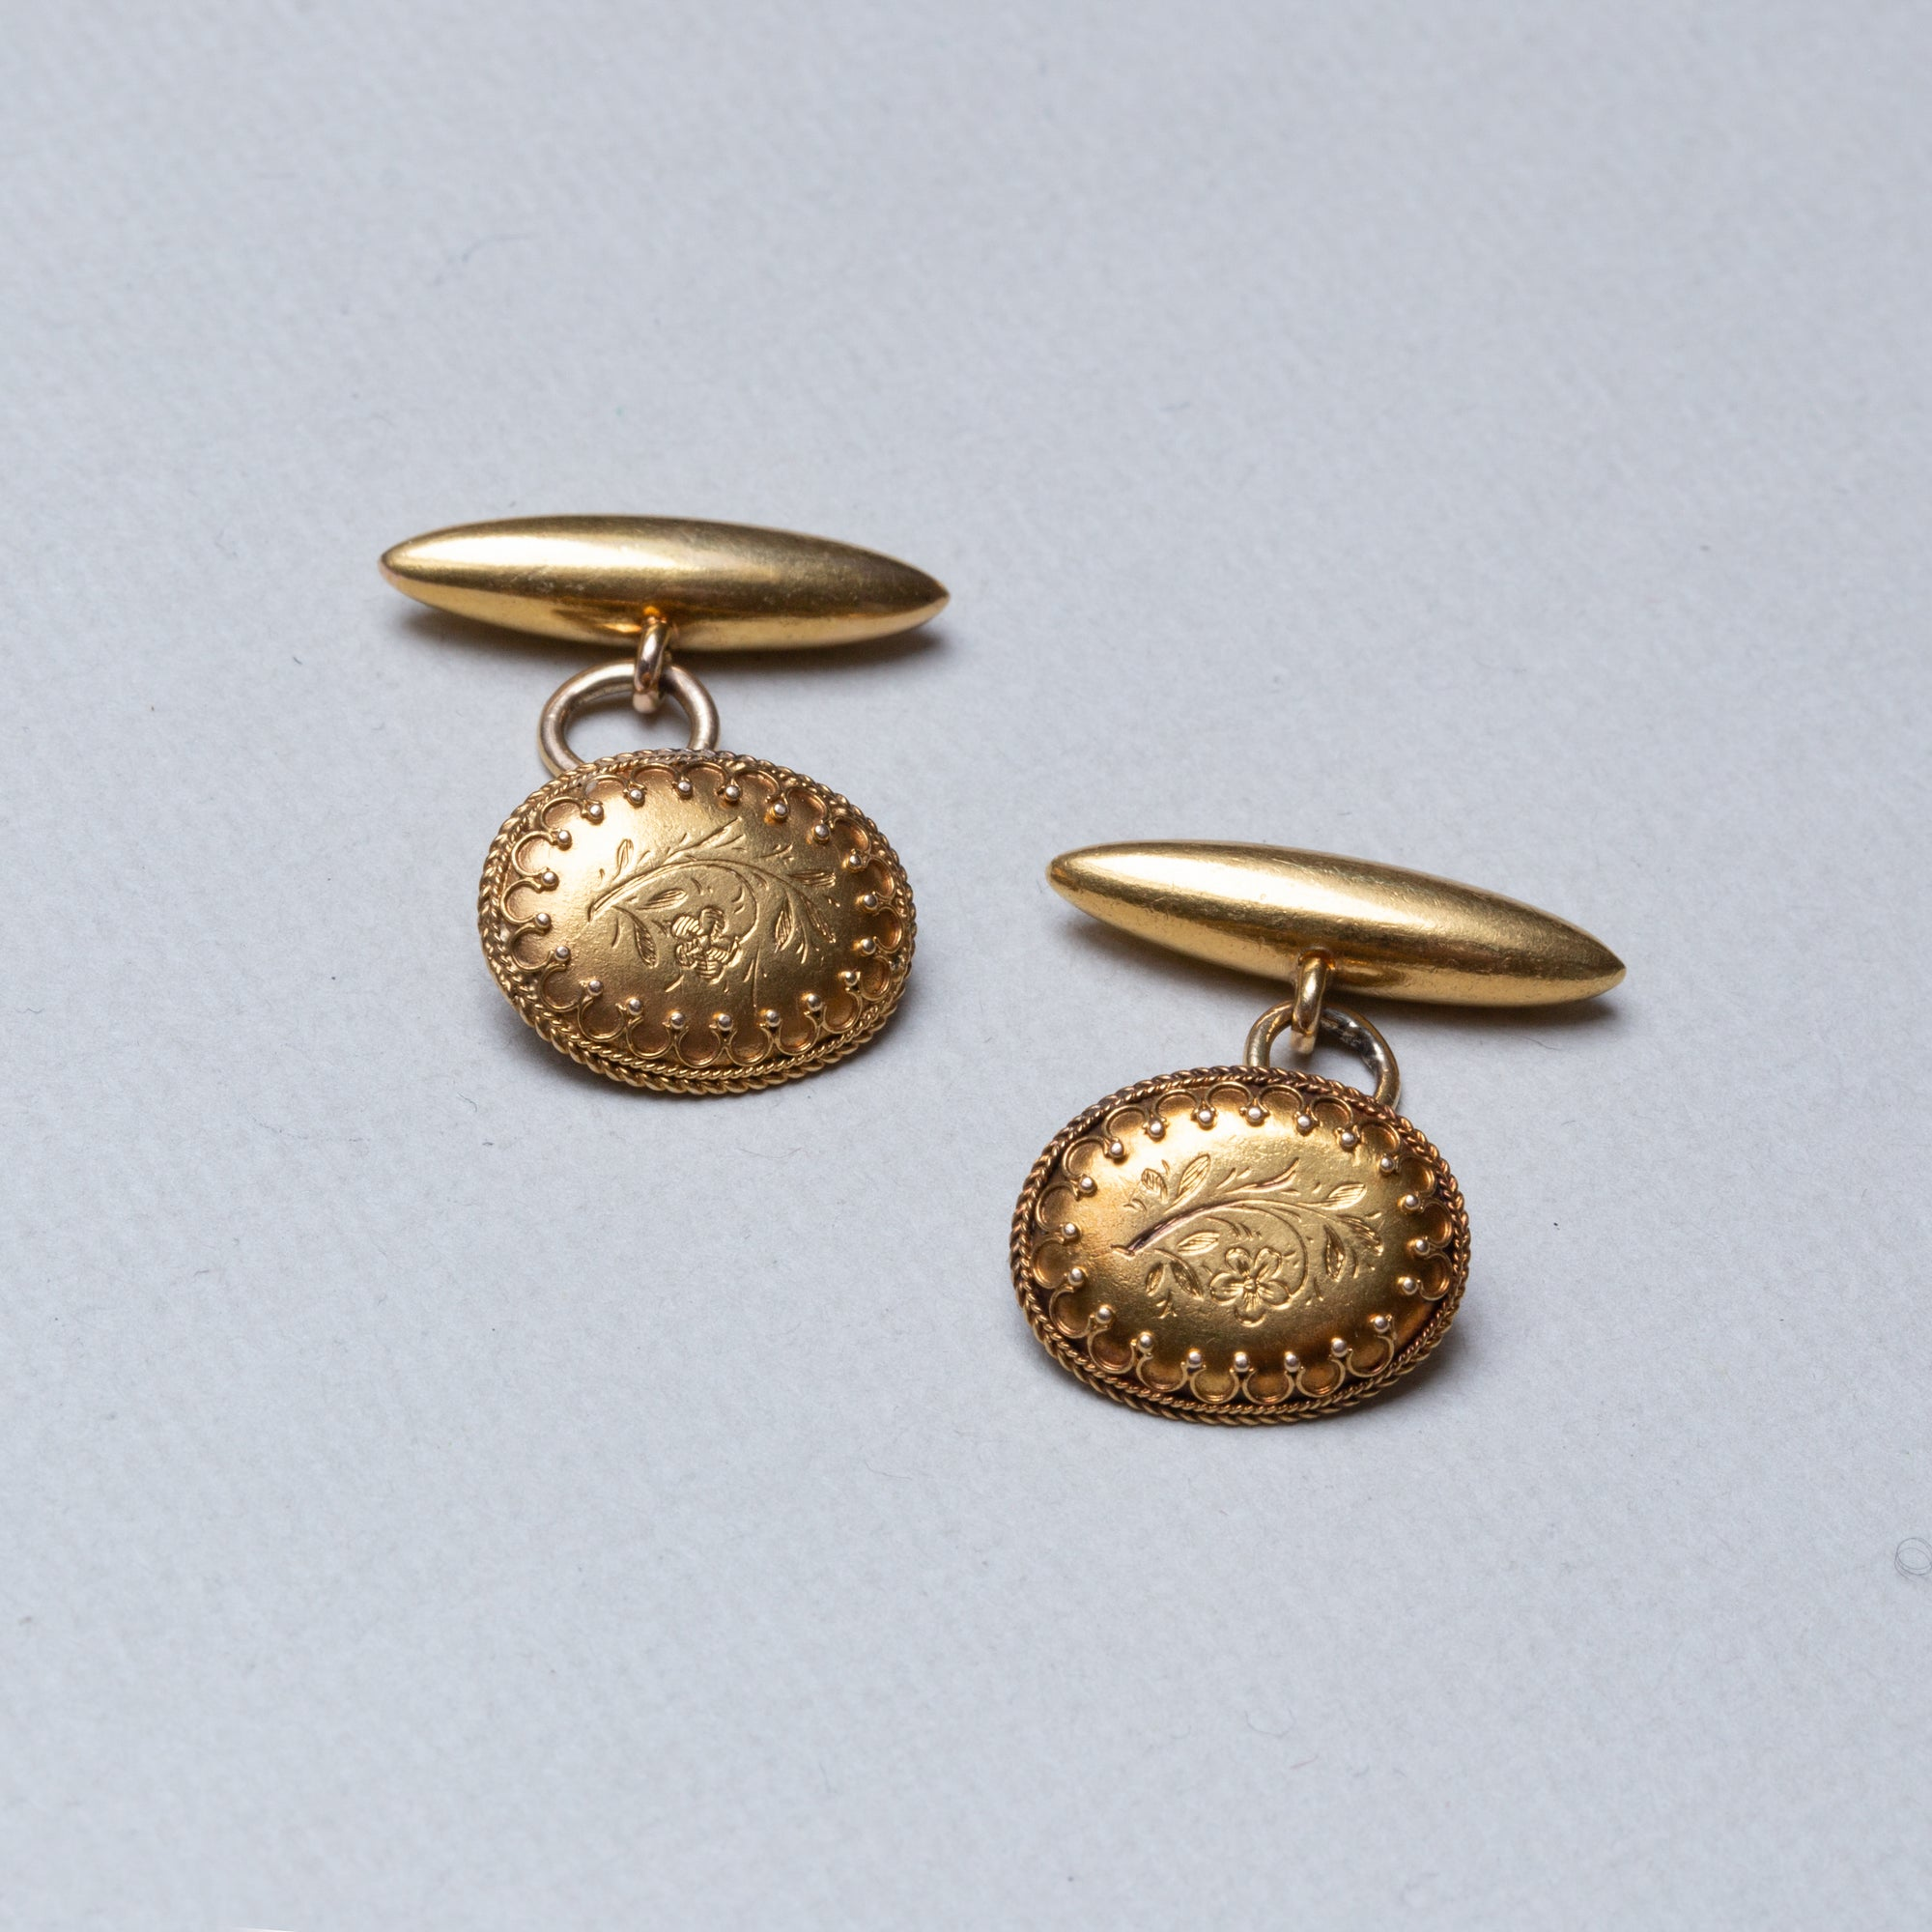 Vintage 18ct Gold Flower Cufflinks